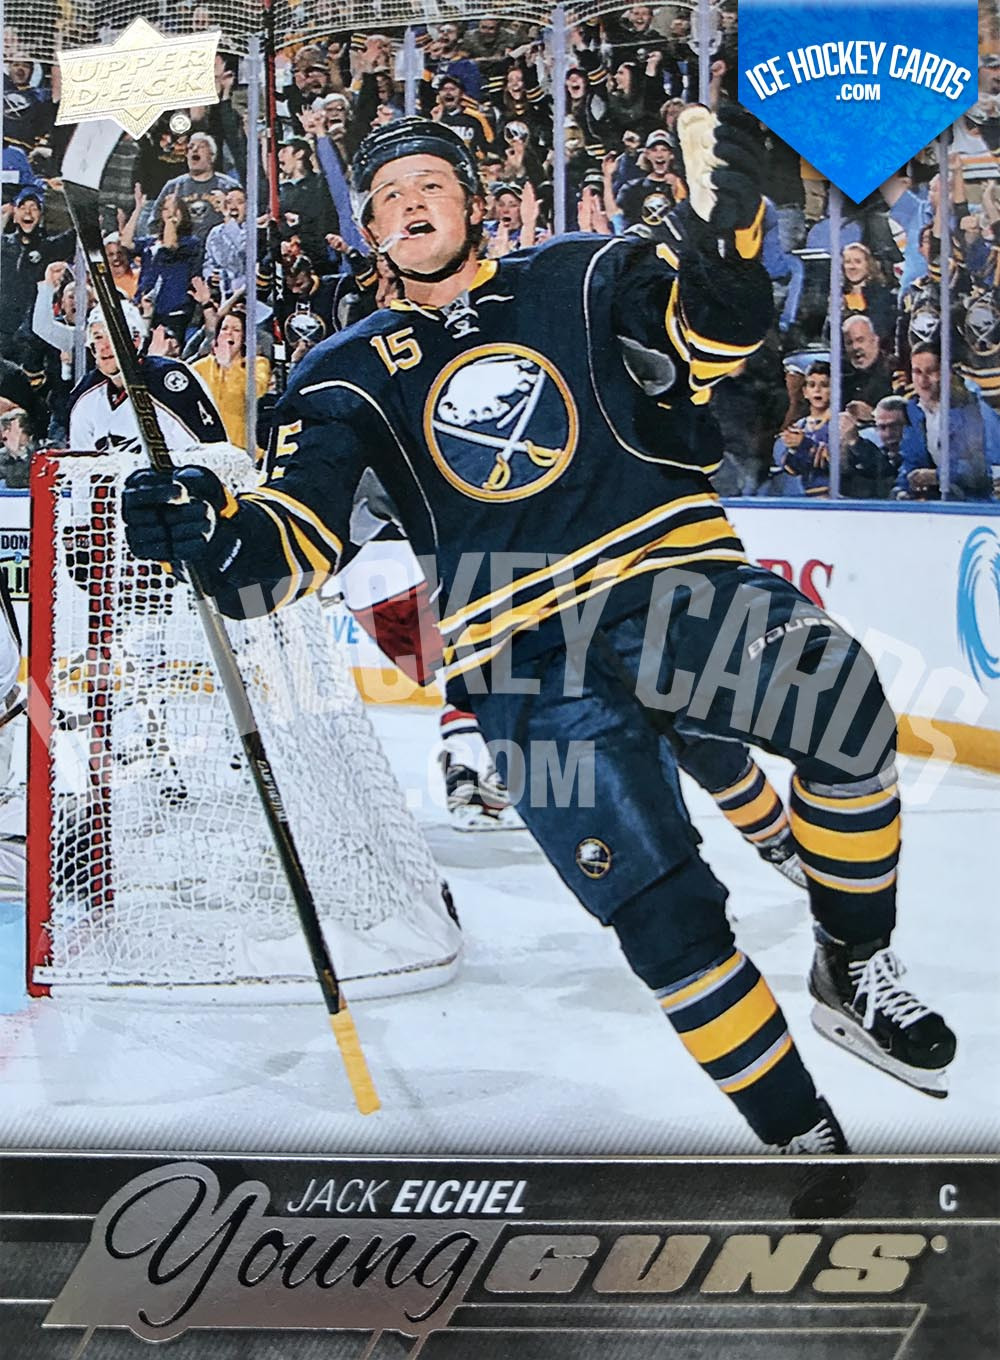 Upper Deck - Series 2015-16 - Jack Eichel Young Guns Rookie Card